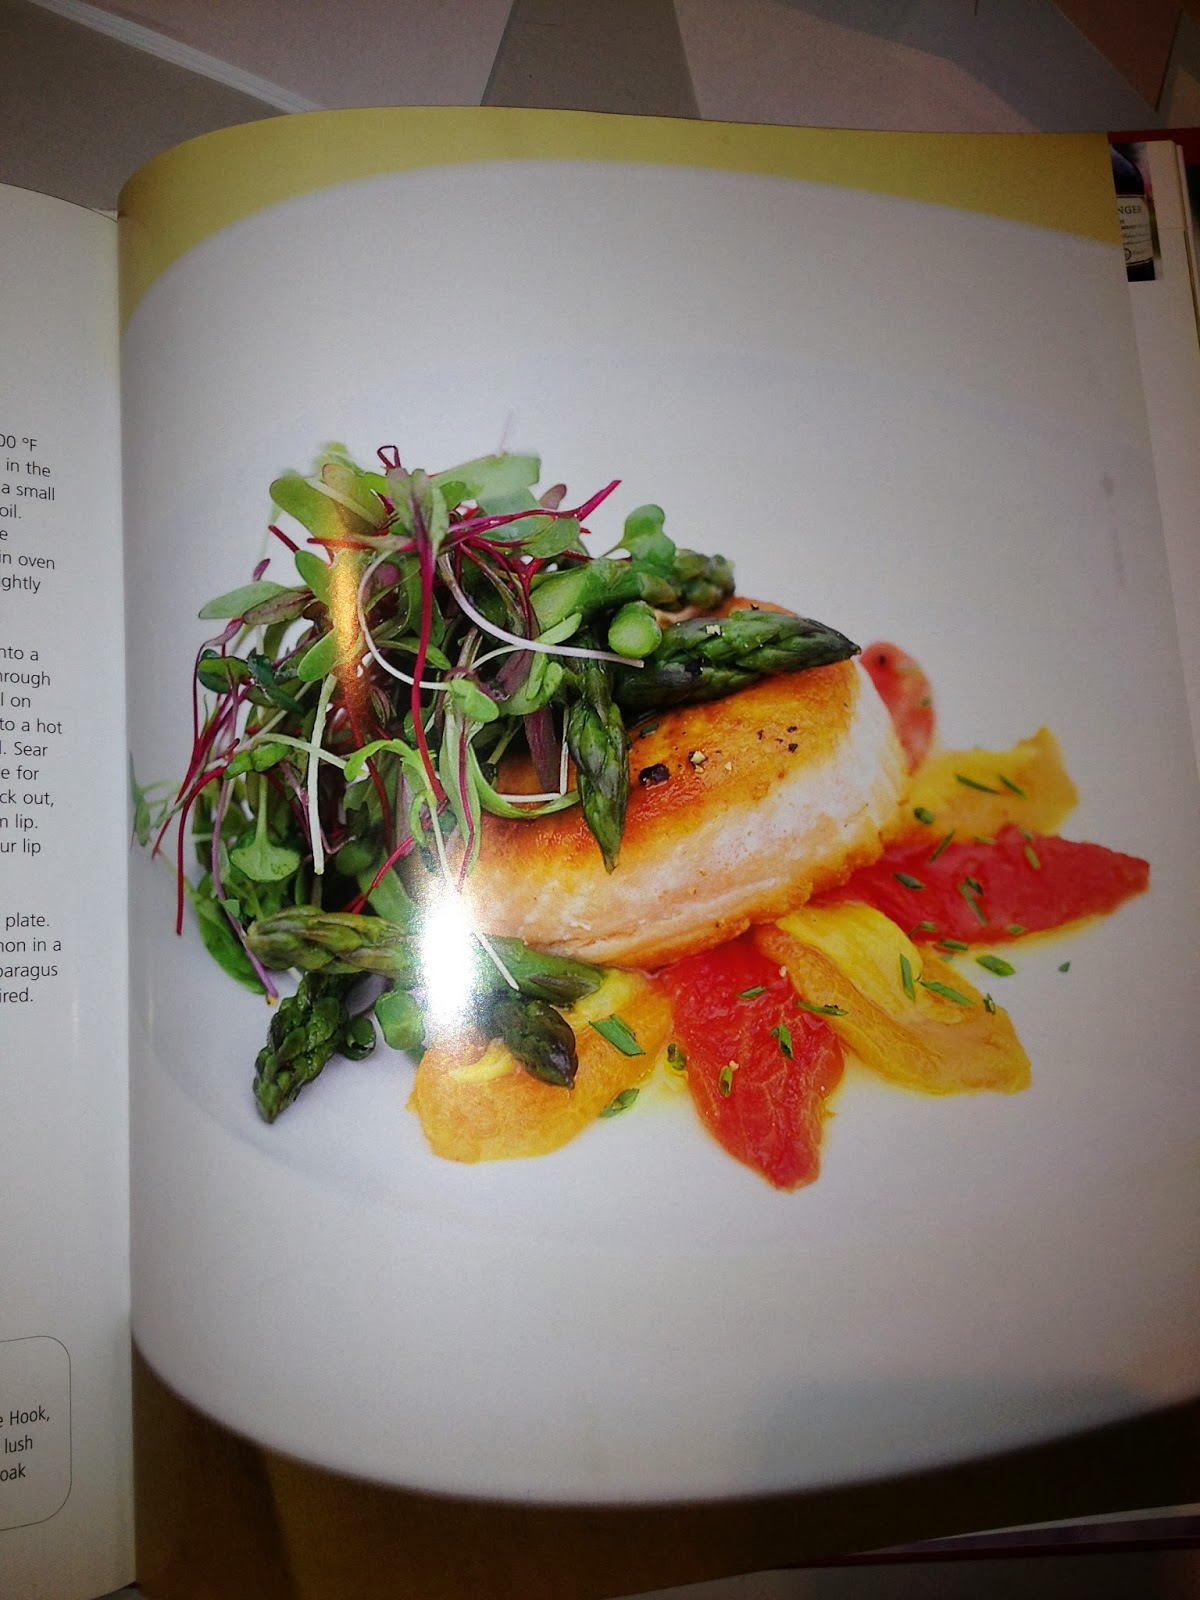 Salmon medallions. Cooking secrets 54